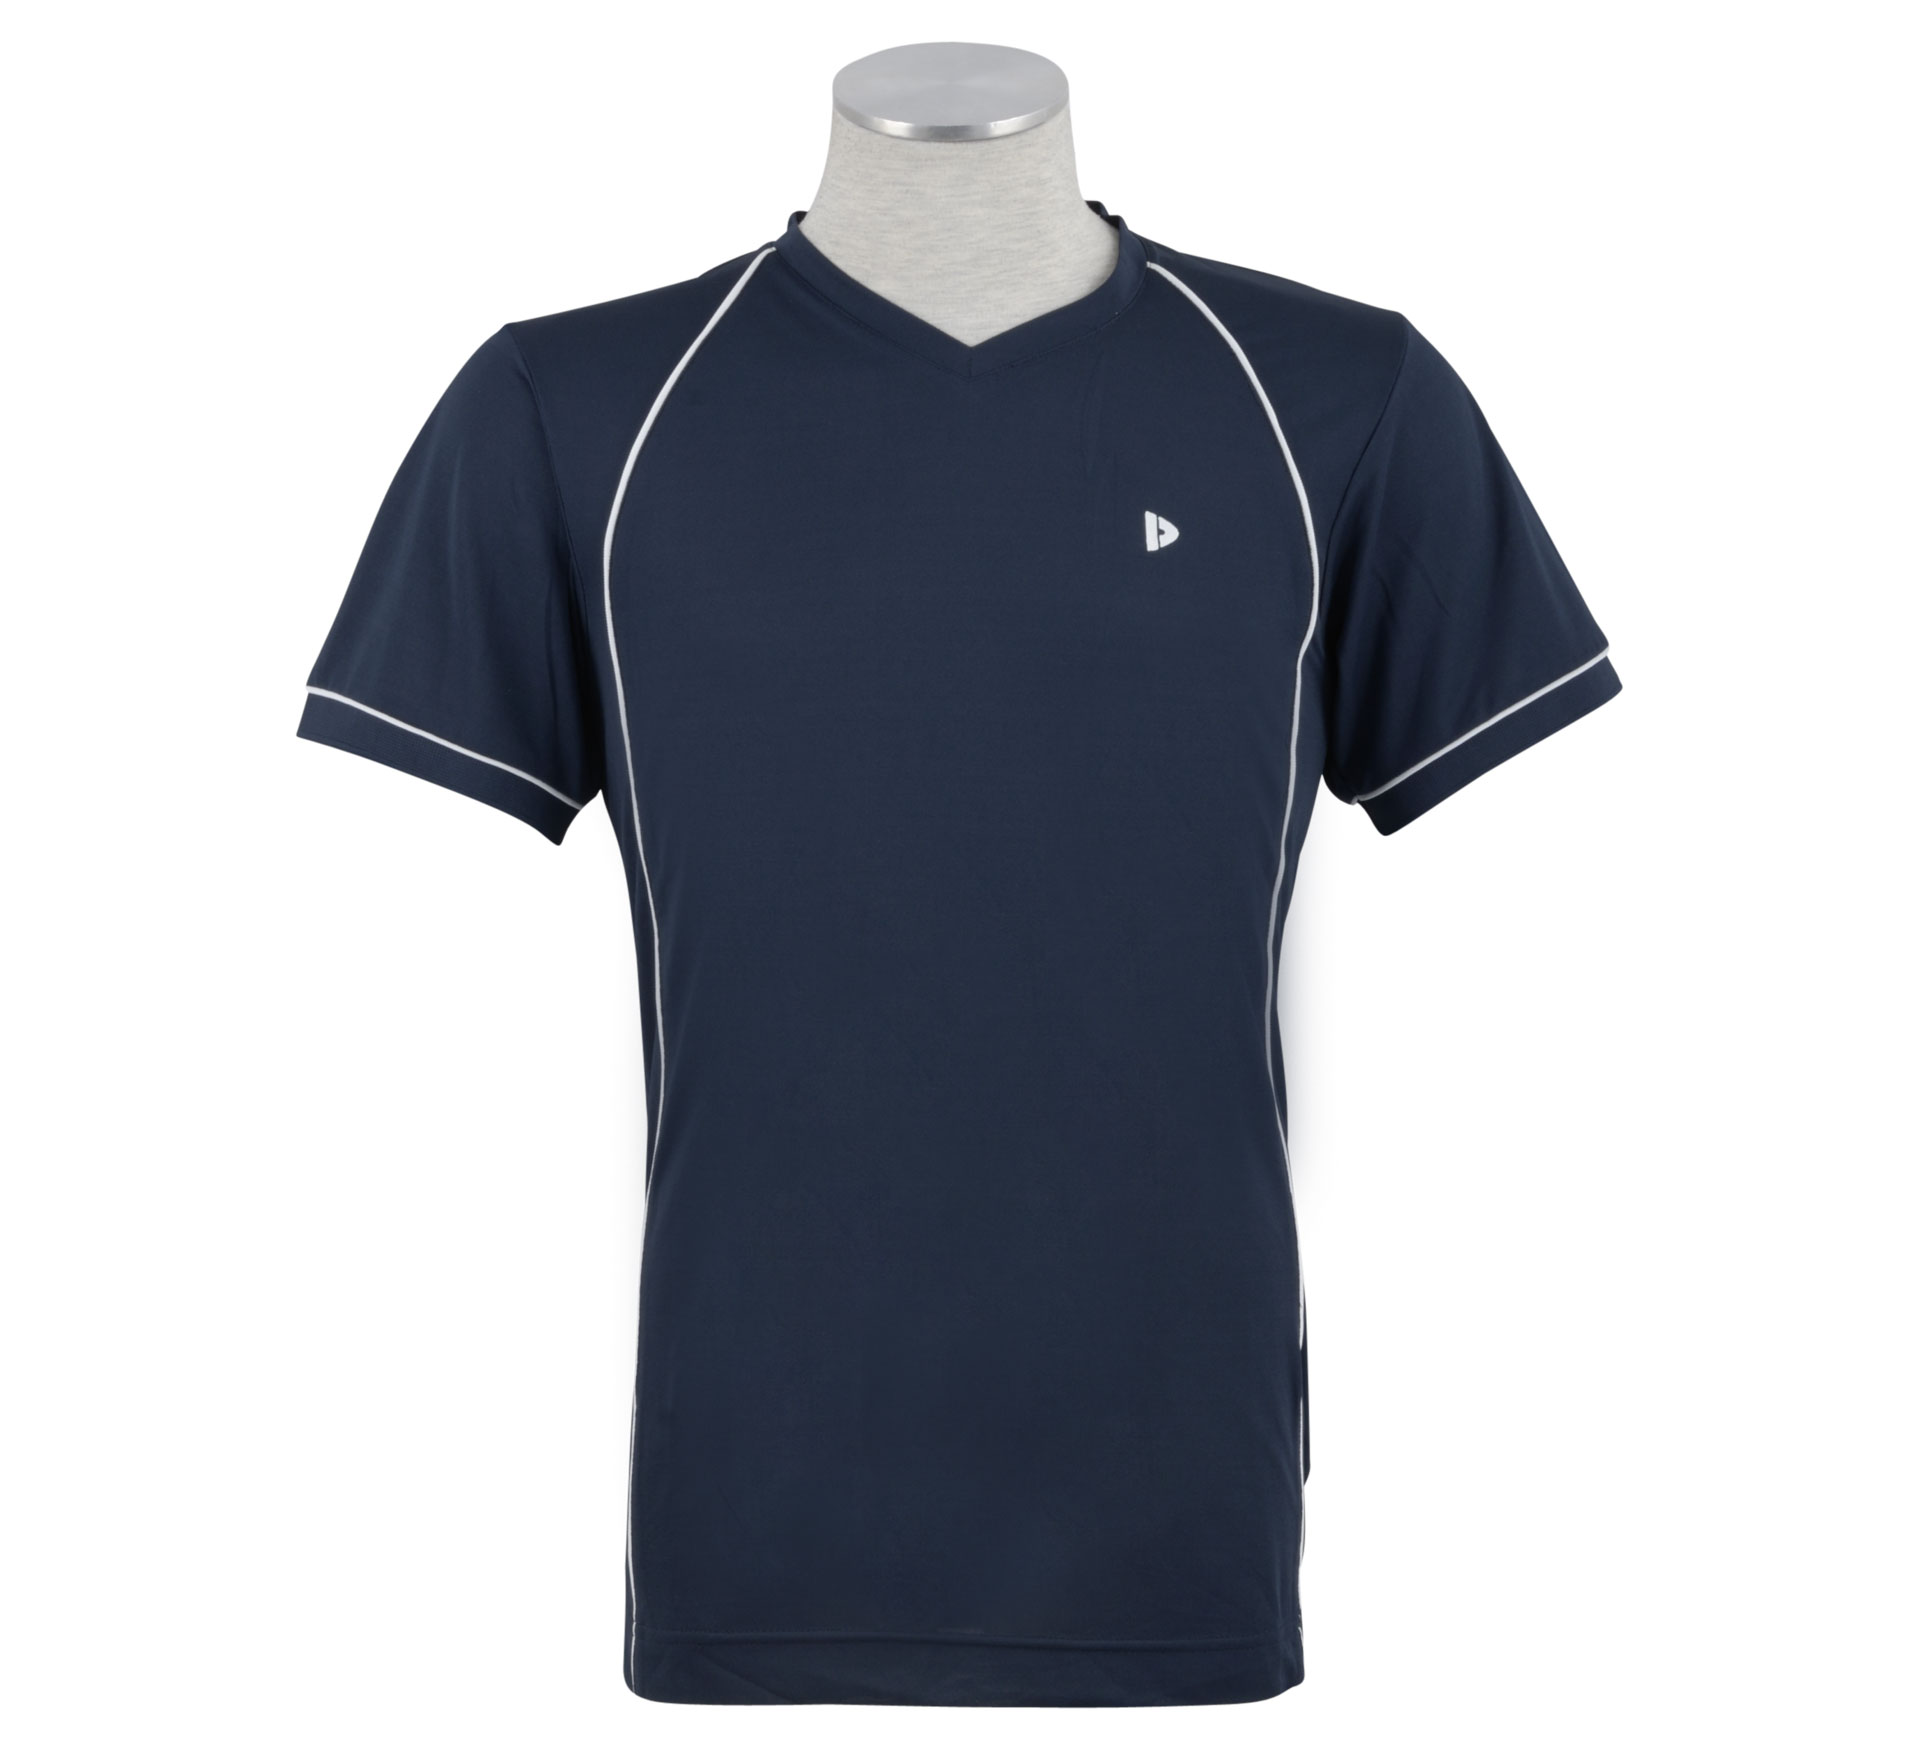 Donnay Sportshirt Tony Heren navy - wit